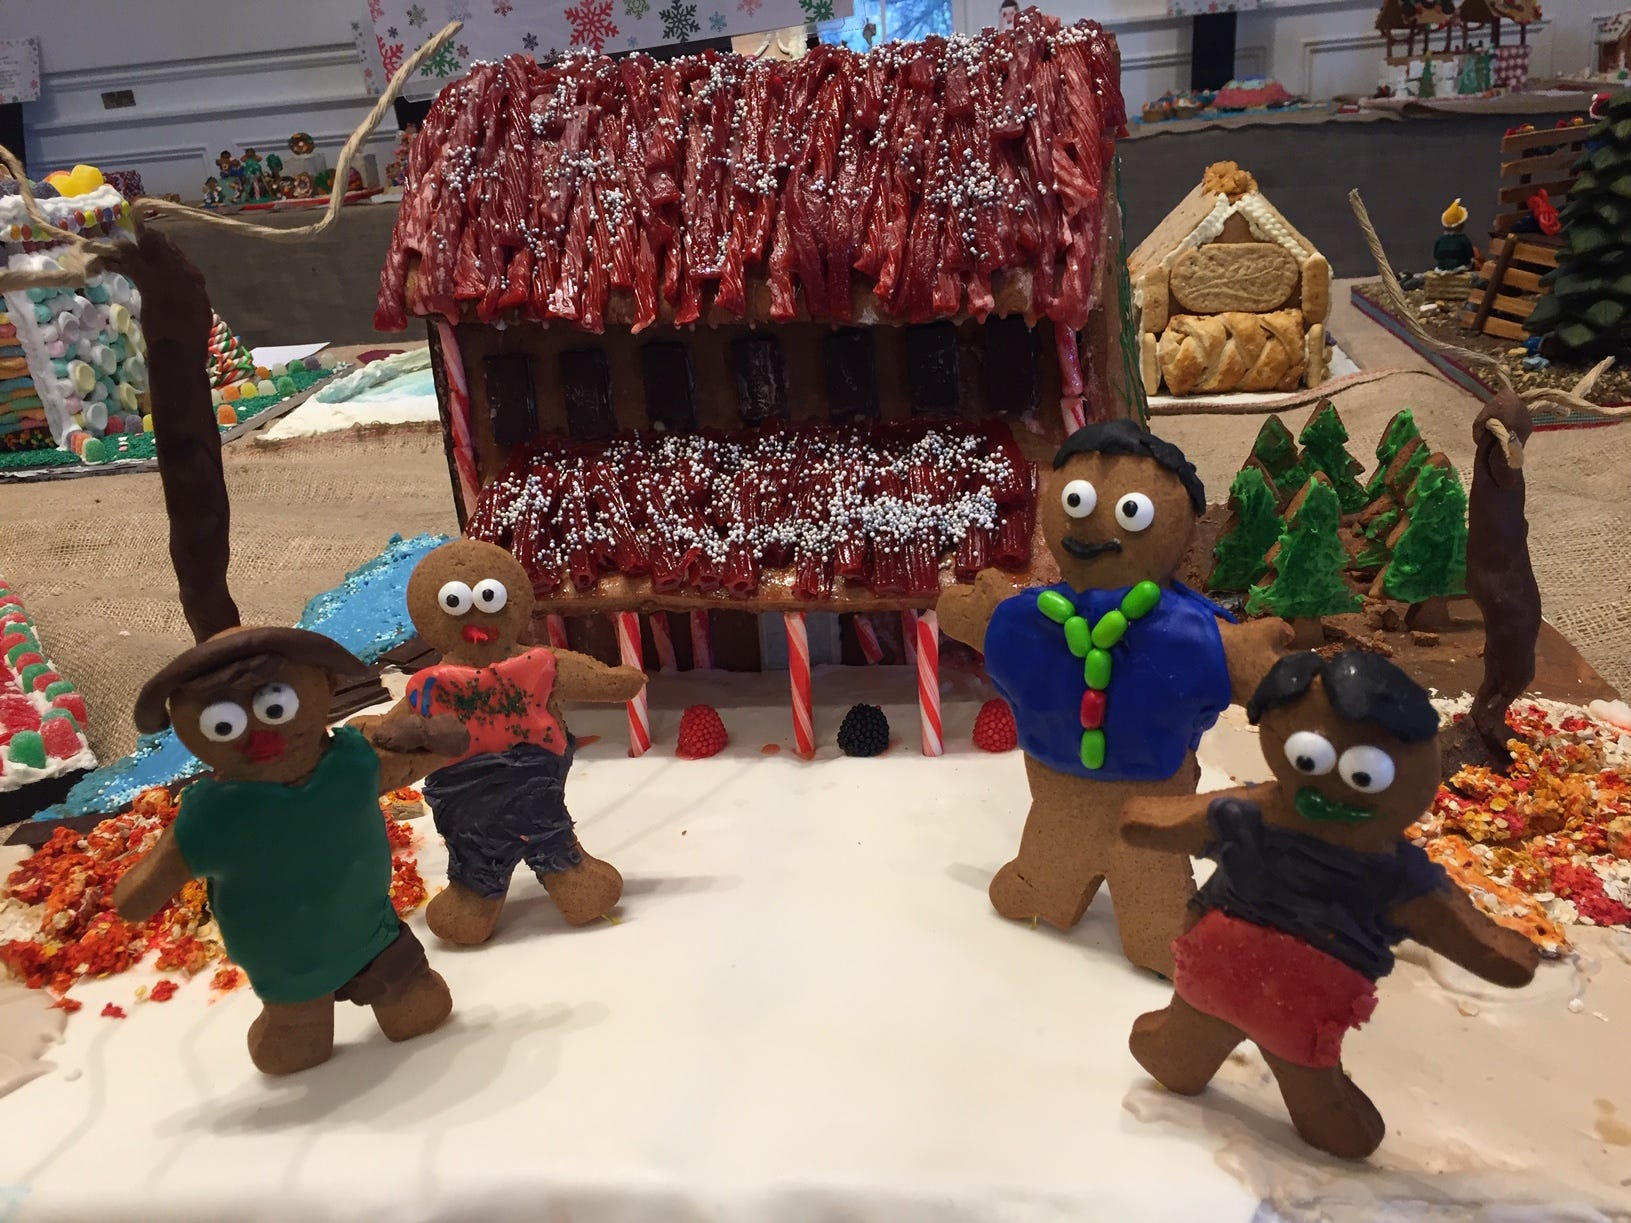 """Feltville 'Desserted' Village from the Watchung Nature Preserve by Tiff Kline and Brian Hong, Summit, at the Gingerbread Wonderland at the Frelinghuysen Arboretum. Adult category."